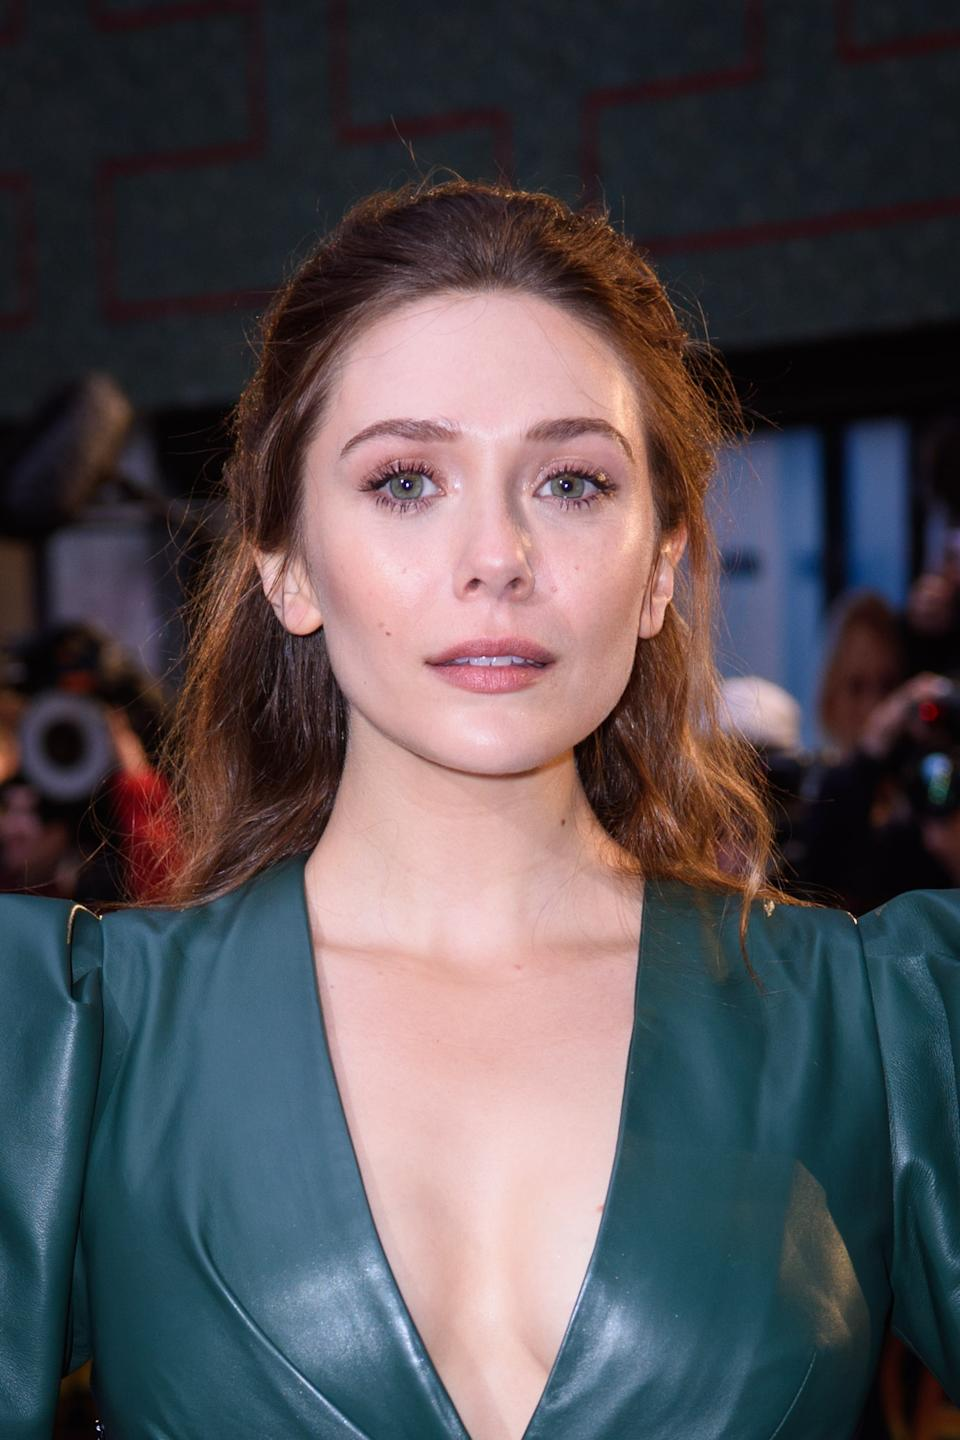 Elizabeth Olsen said the paparazzi were obsessed with her elder sisters turning 18PA